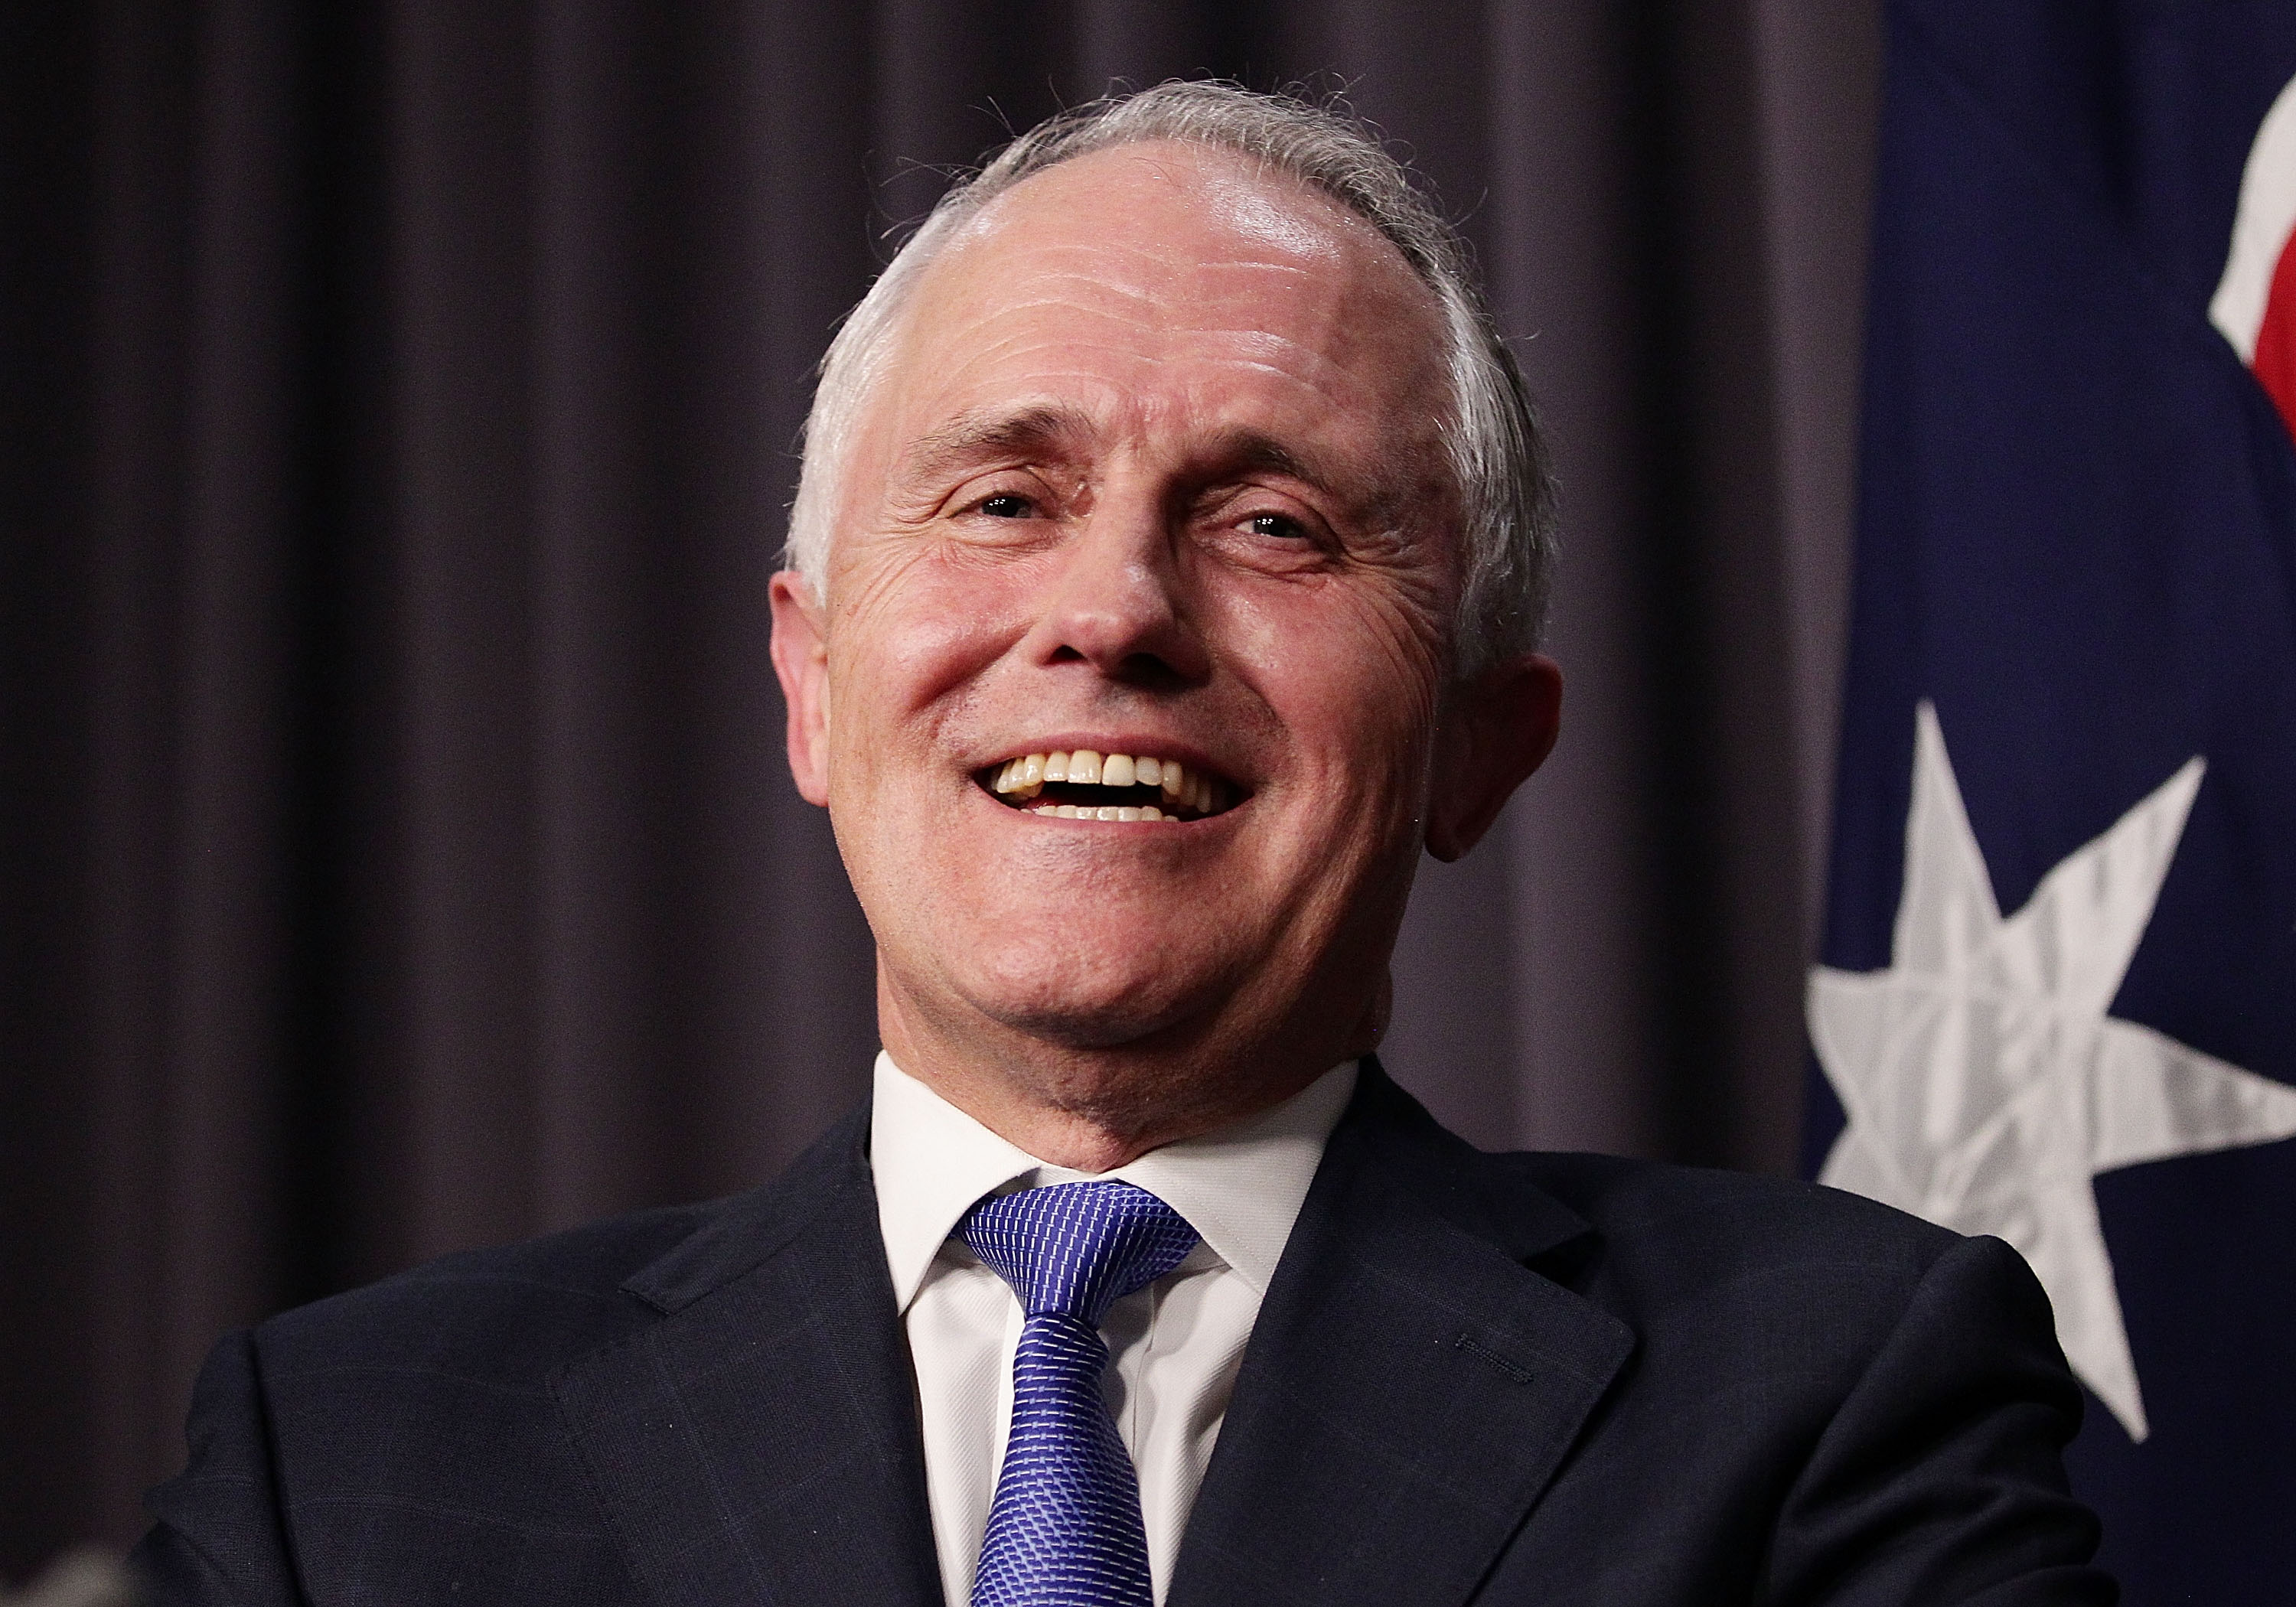 CANBERRA, AUSTRALIA - SEPTEMBER 14: Malcolm Turnbull speaks to the media after winning the leadership ballot at Parliament House on September 14, 2015 in Canberra, Australia. Malcolm Turnbull announced this morning he would be challenging Tony Abbott for the Liberal Party leadership. (Photo by Stefan Postles/Getty Images)